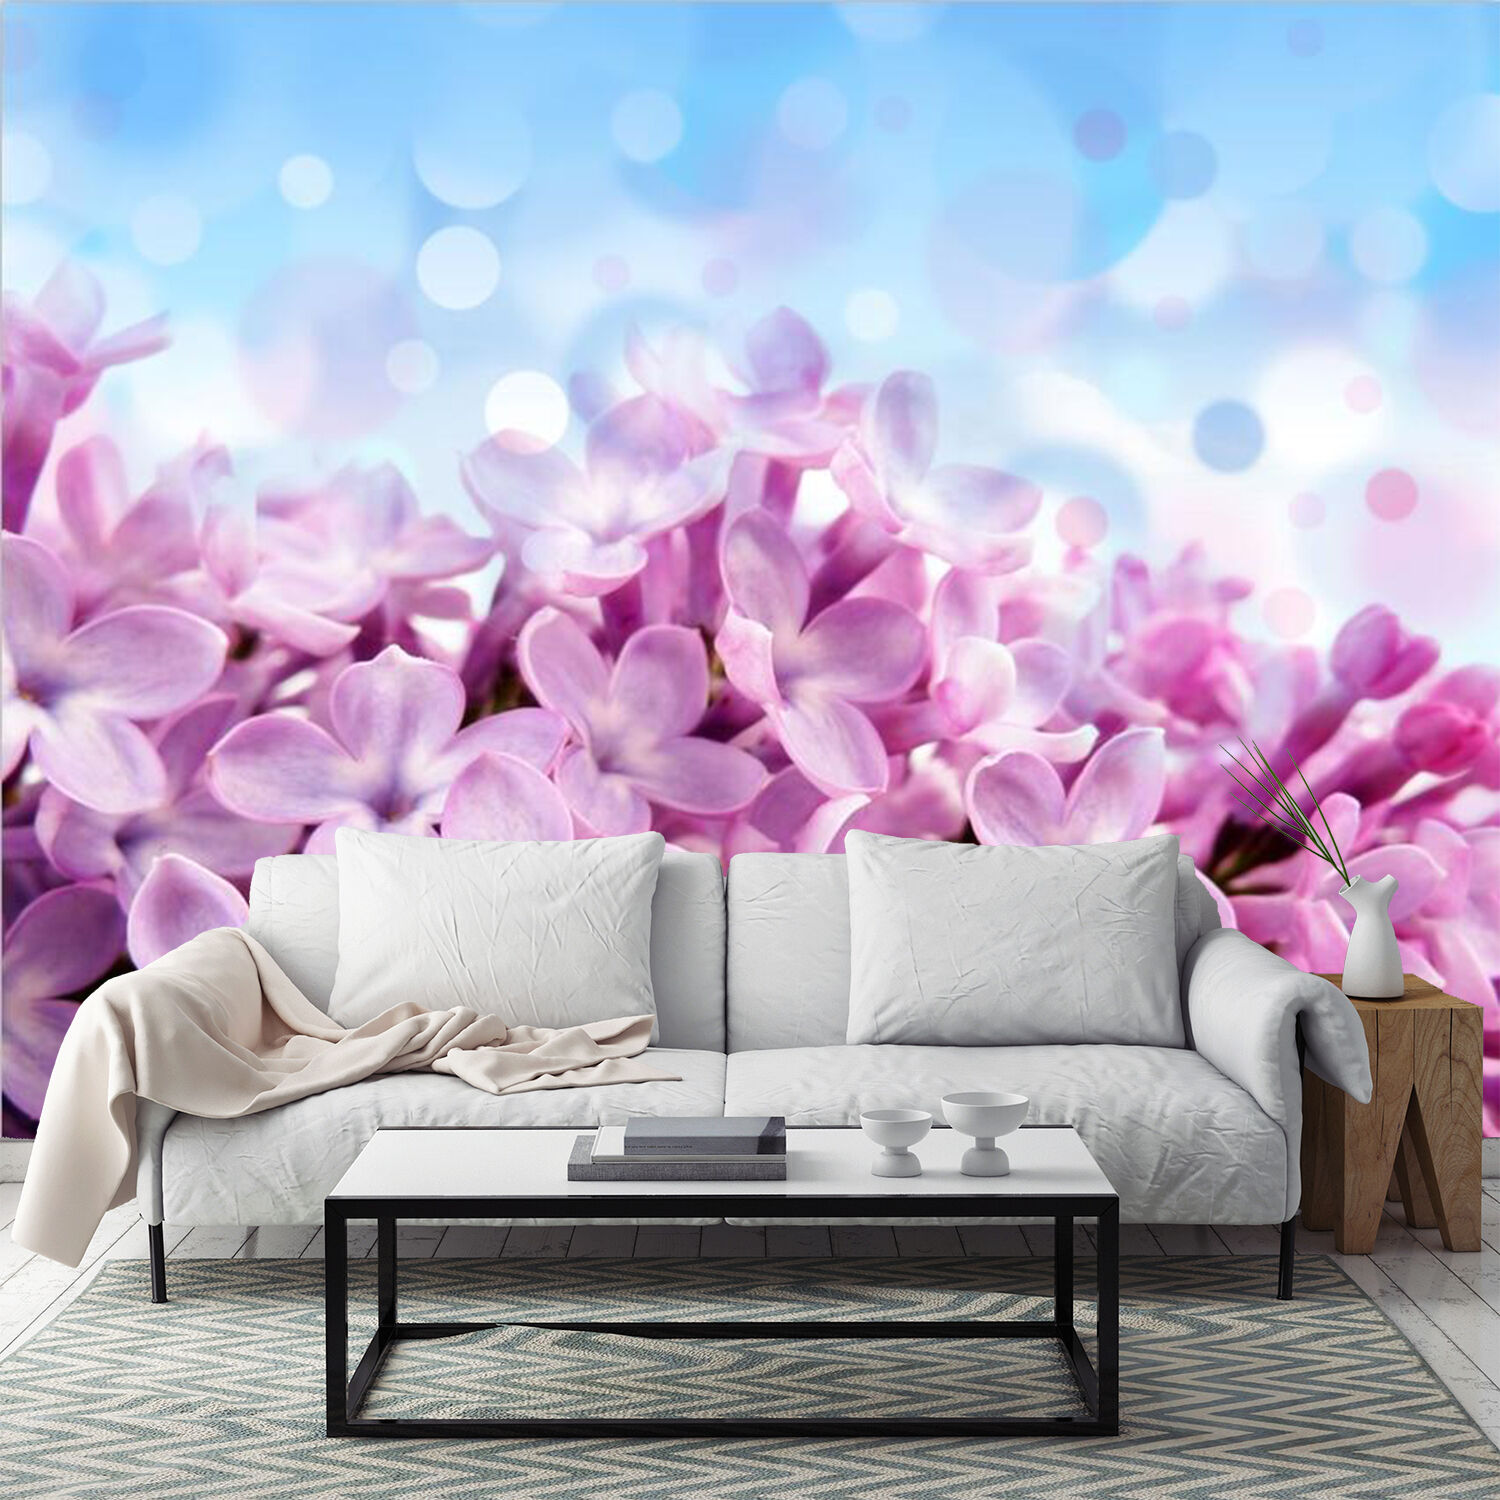 3D Beautiful Romantic Flowers Wall Paper Print Decal Wall Deco Indoor wall Mural